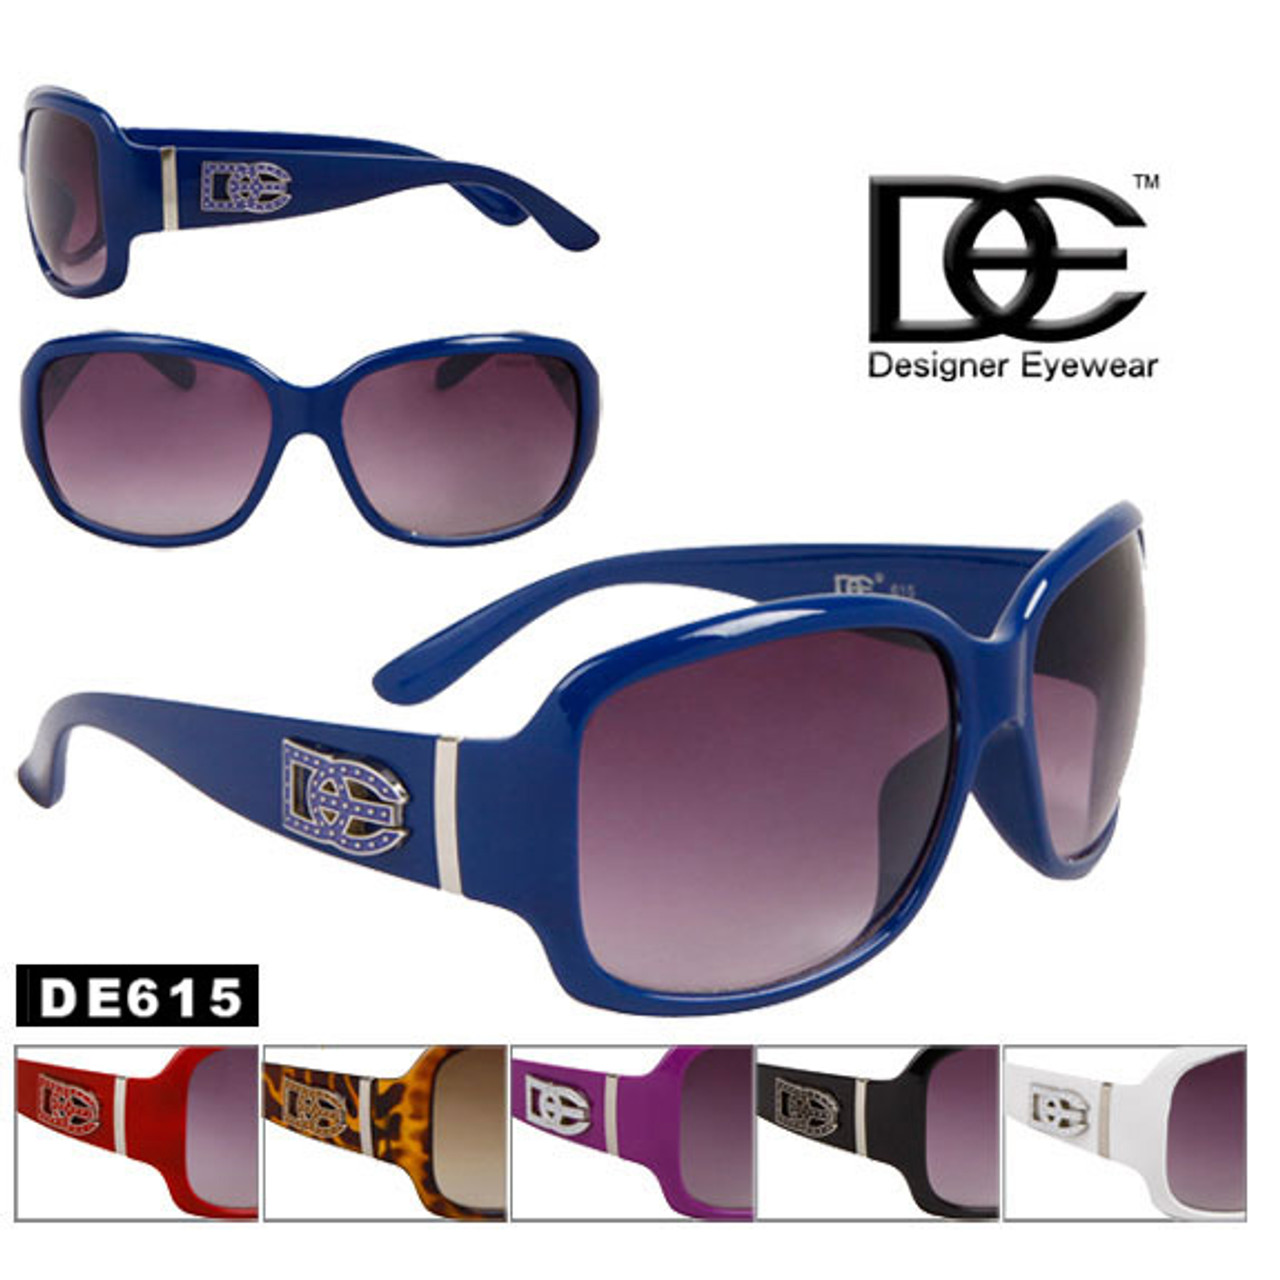 DE Designer Eyewear Fashion Sunglasses DE615